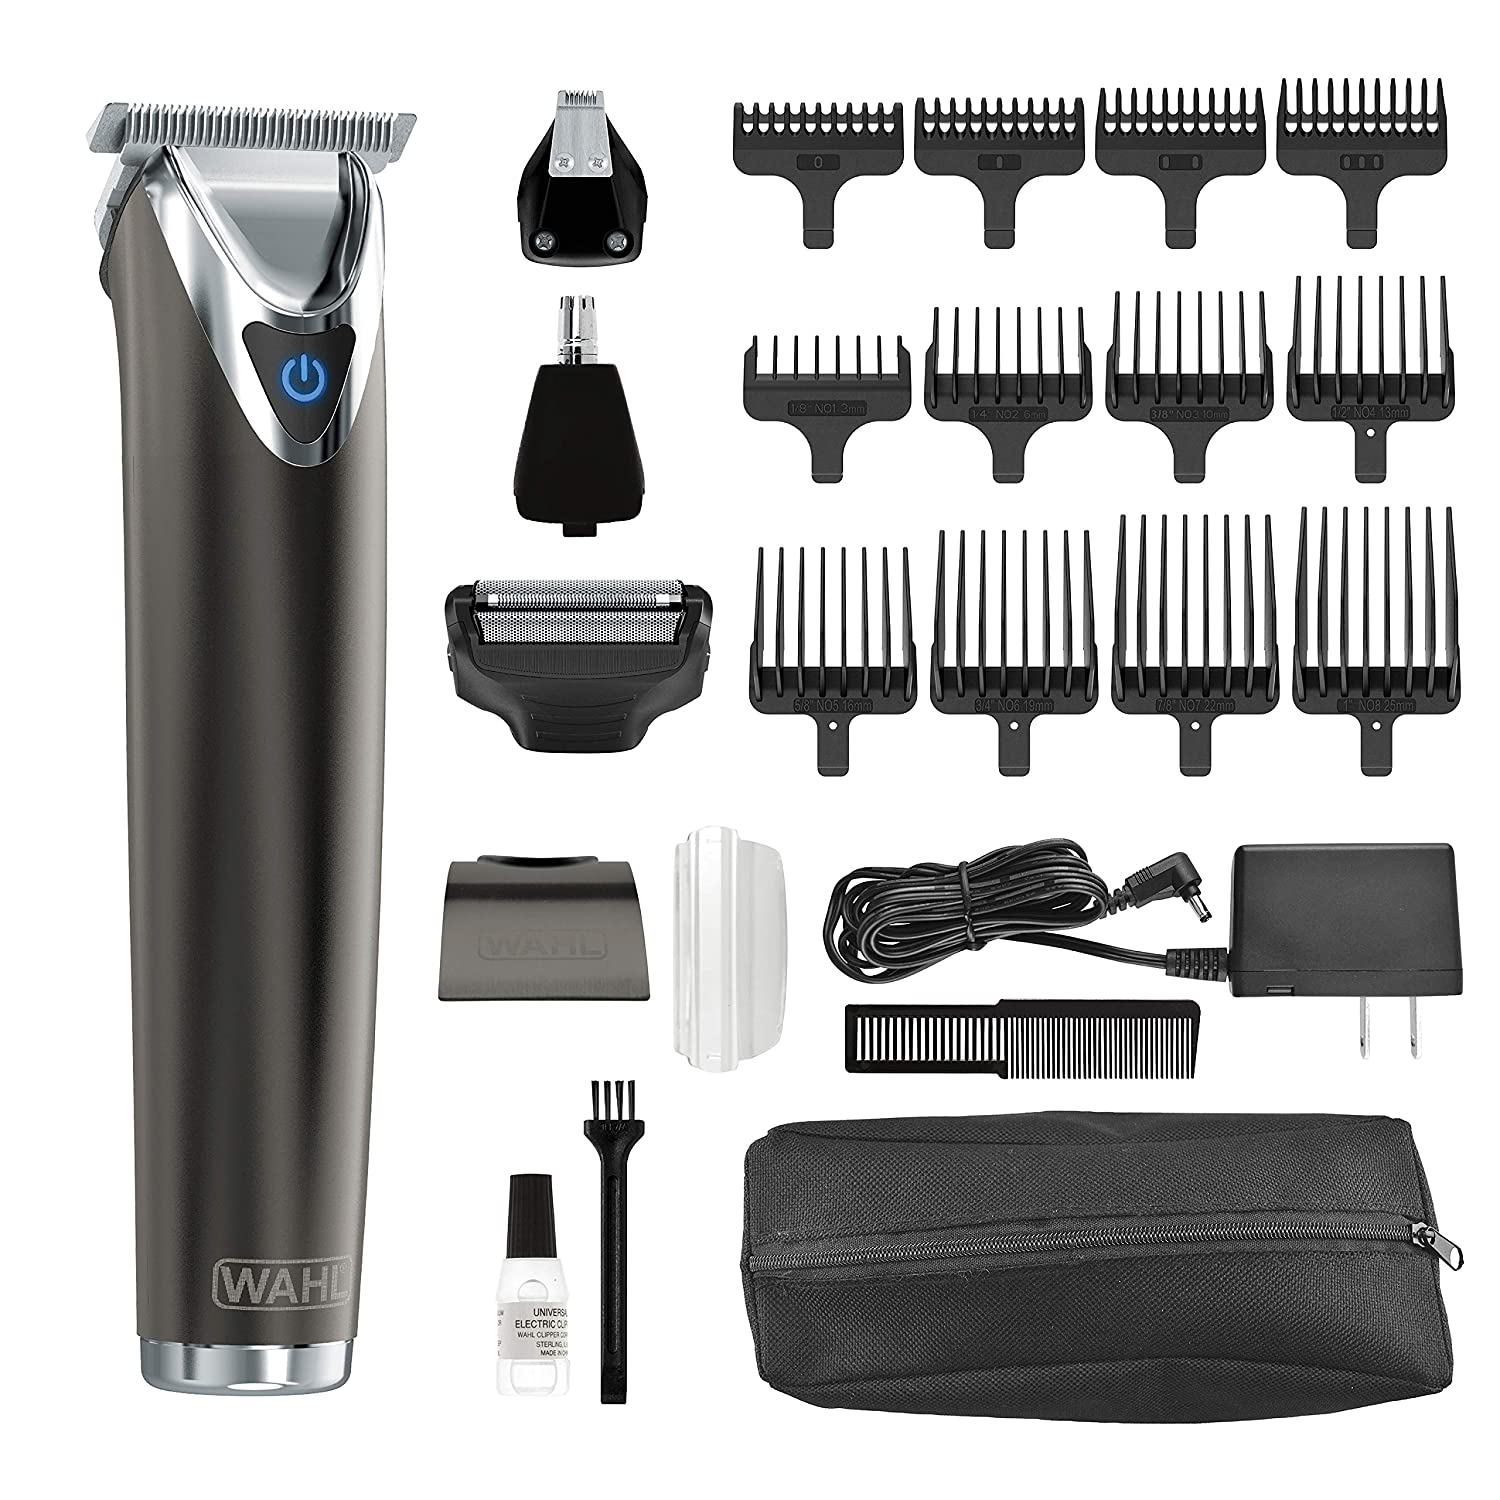 Wahl Clipper Slate Stainless Steel Lithium Ion Plus Beard Trimmers for Men, Electric Shavers, Nose Ear Trimmers, Rechargeable All in One Men's Grooming Kit, by the Brand used by Professionals, 9864 Wahl Clipper Corp